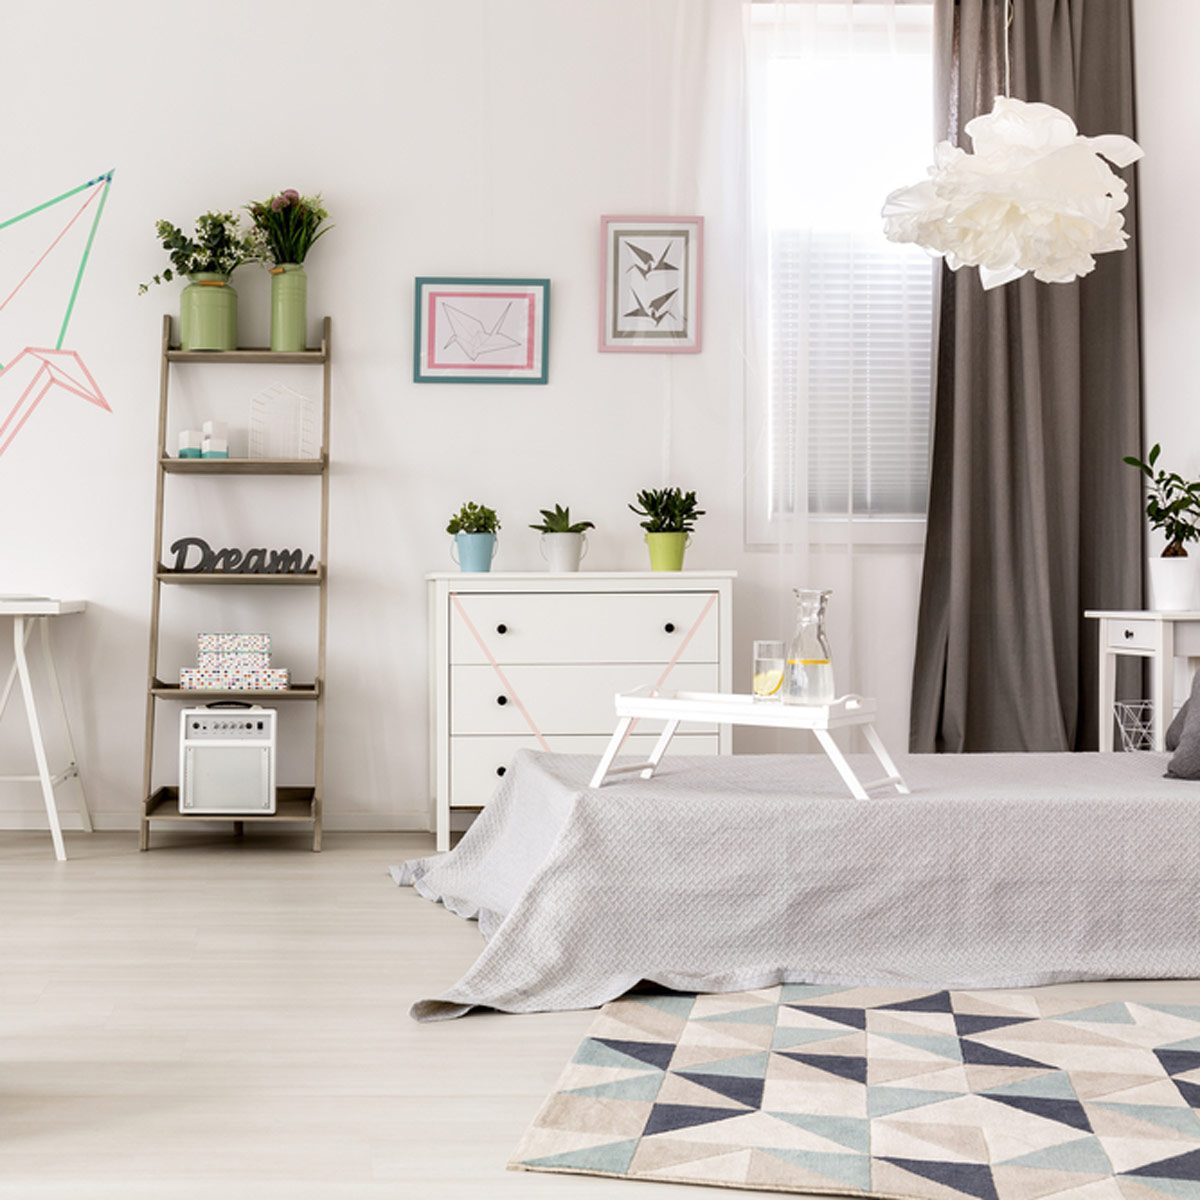 Pretty Bedroom Colors: 12 Fresh Bedroom Color Trends